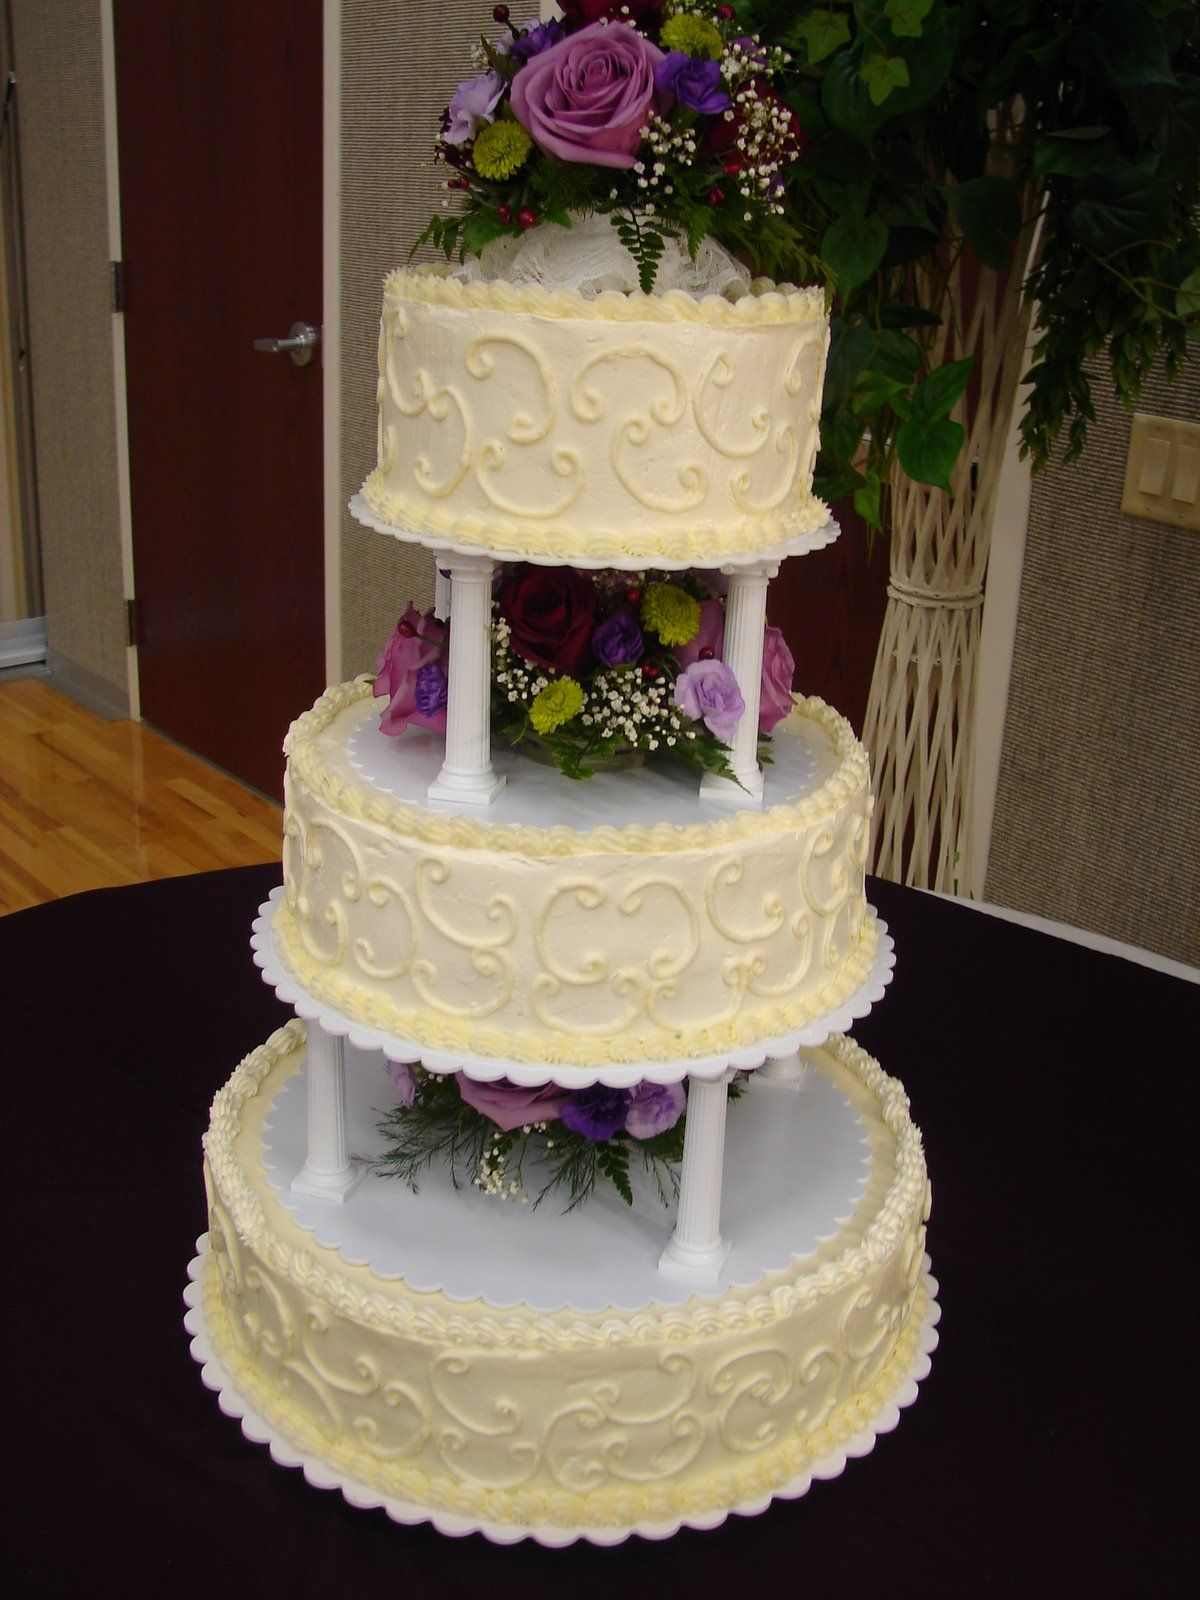 Pictures Of Walmart Wedding Cakes : pictures, walmart, wedding, cakes, Sweetly, Done:, 3-Tiered, White, Scroll, Wedding, Cake,, Walmart, Publix